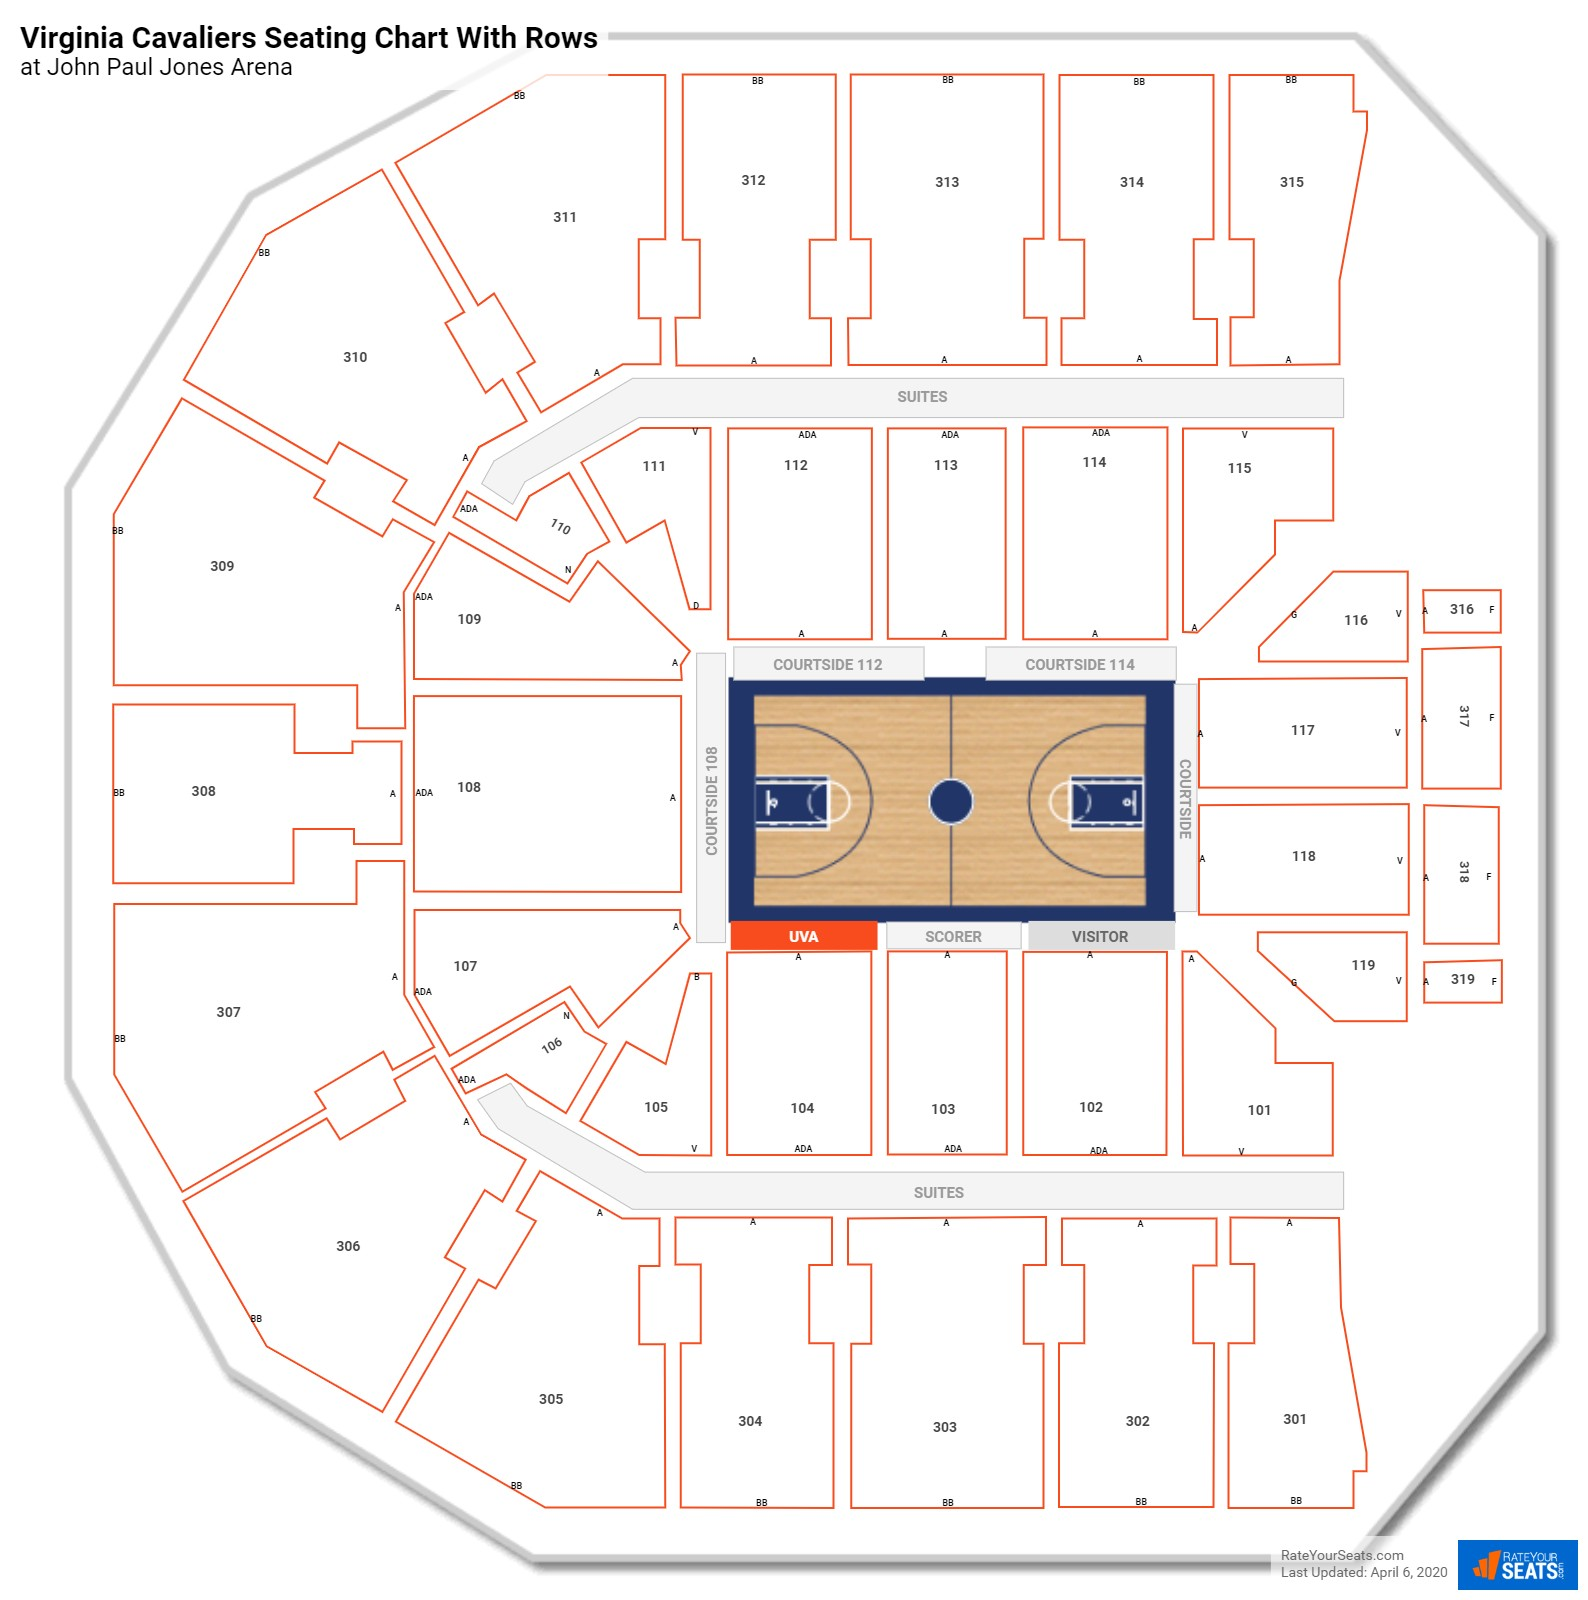 John Paul Jones Arena seating chart with rows